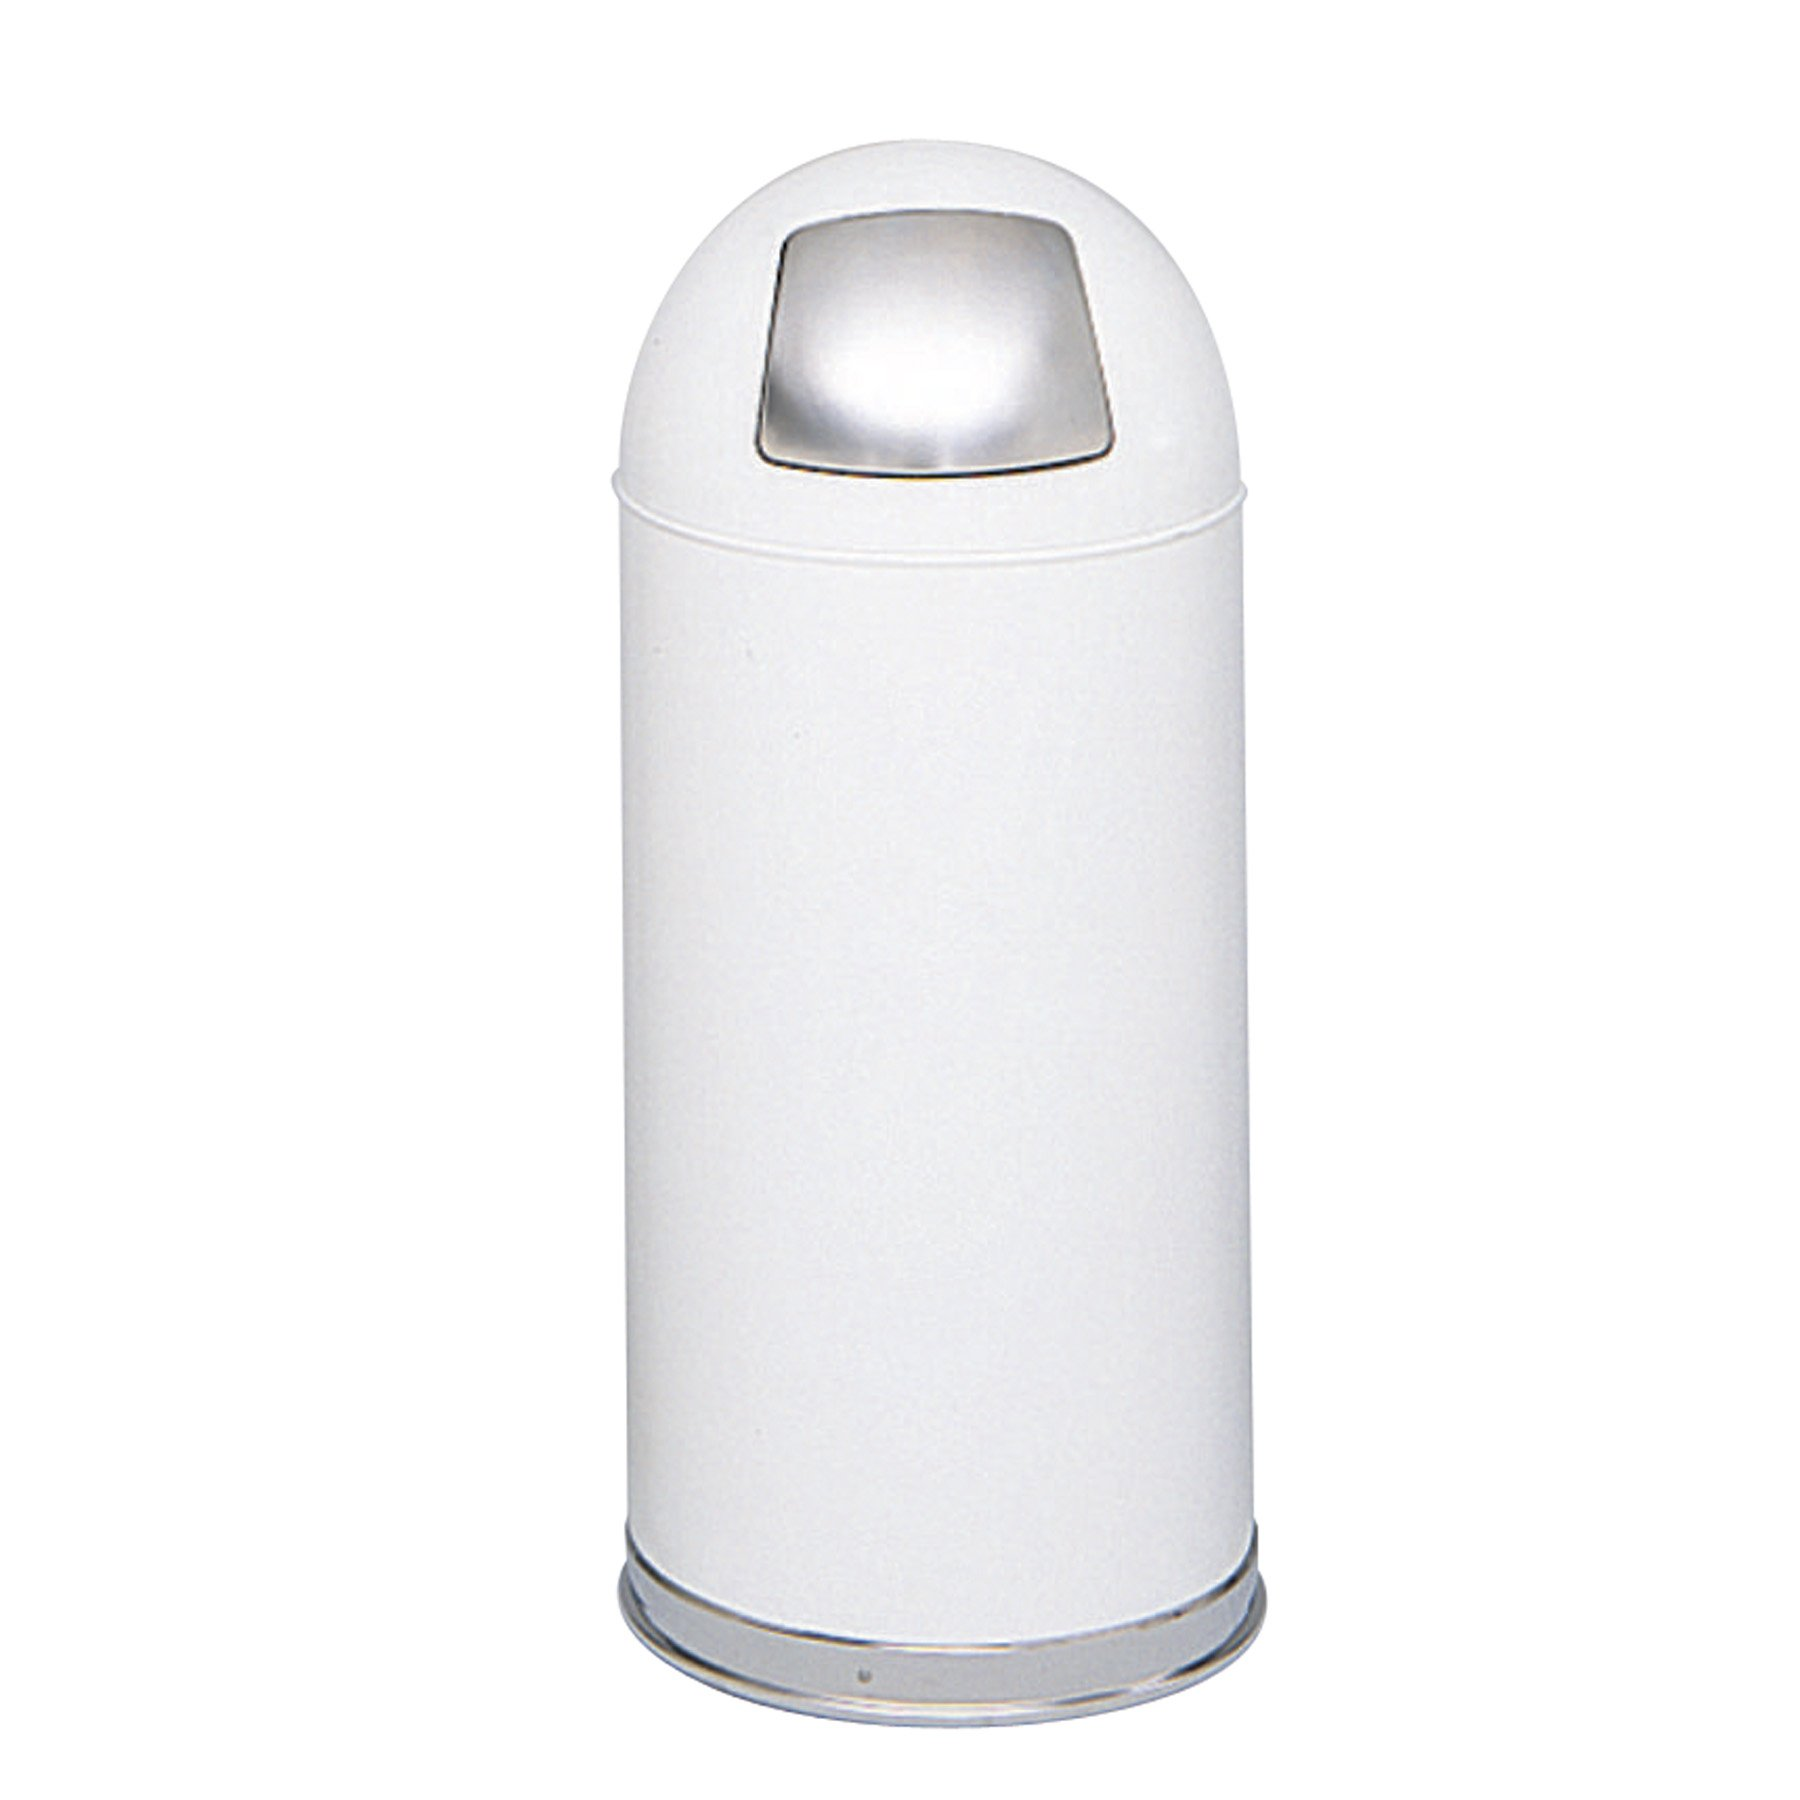 Safco Products 9636WH Push Door Dome Top Waste Receptacle, 15-Gallon, White